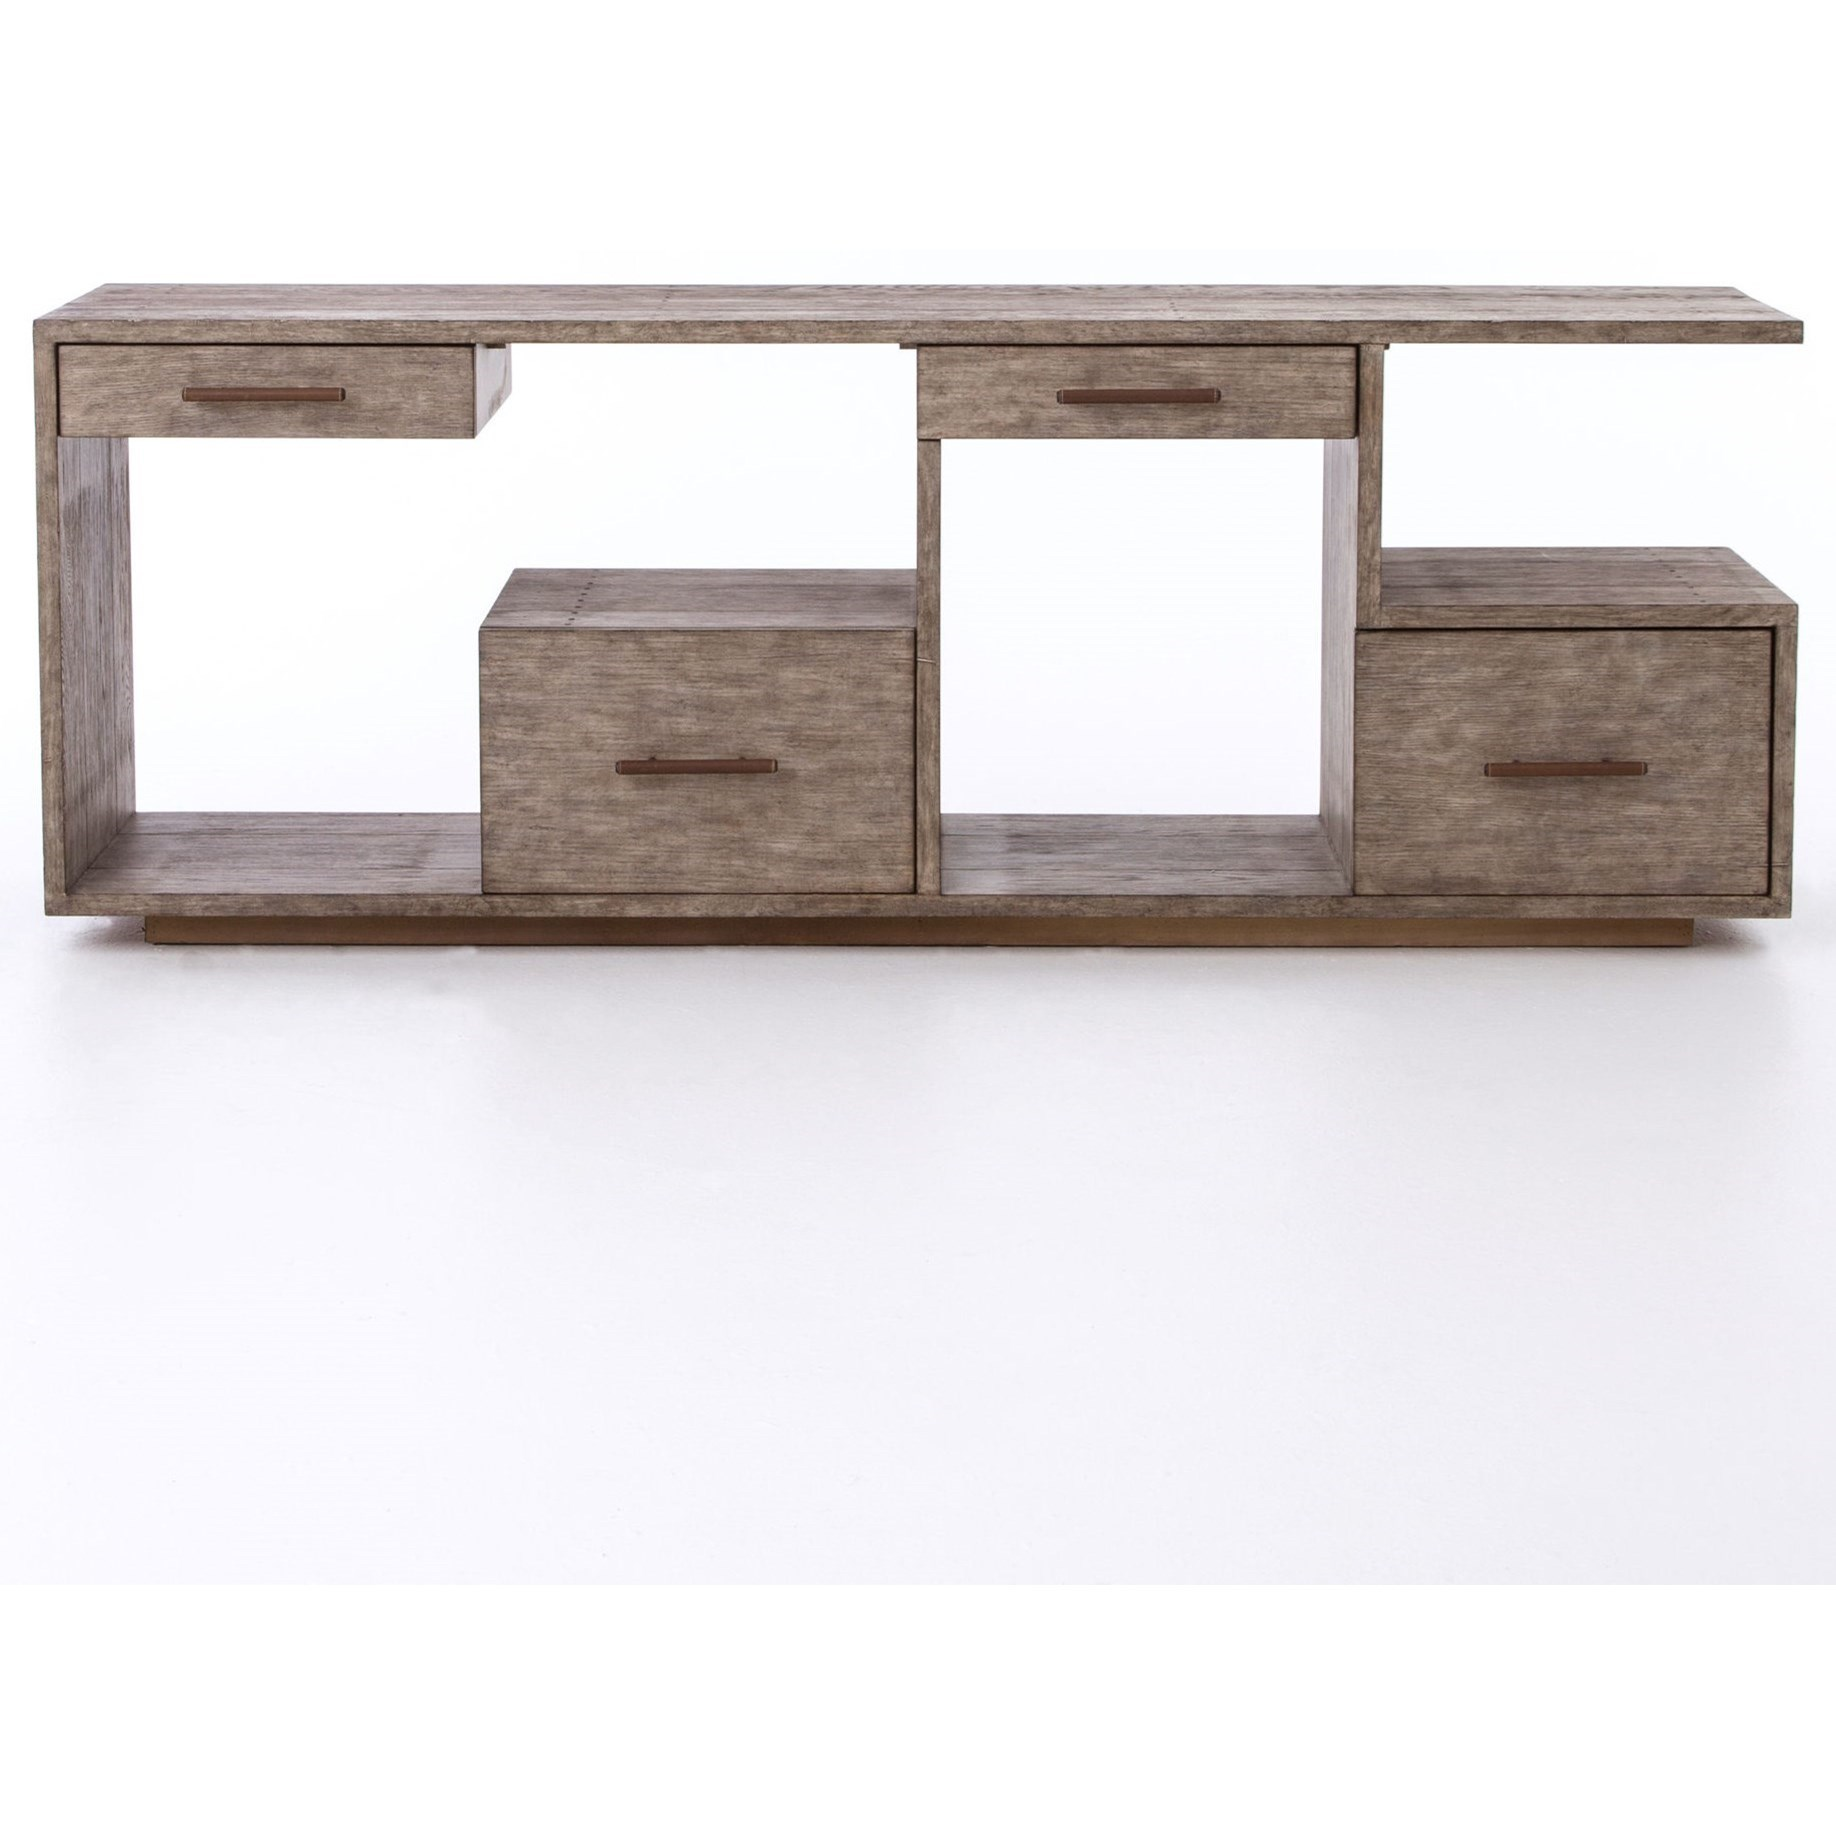 Four Hands Bina Debbie Console Table - Item Number: VBNA-CO314